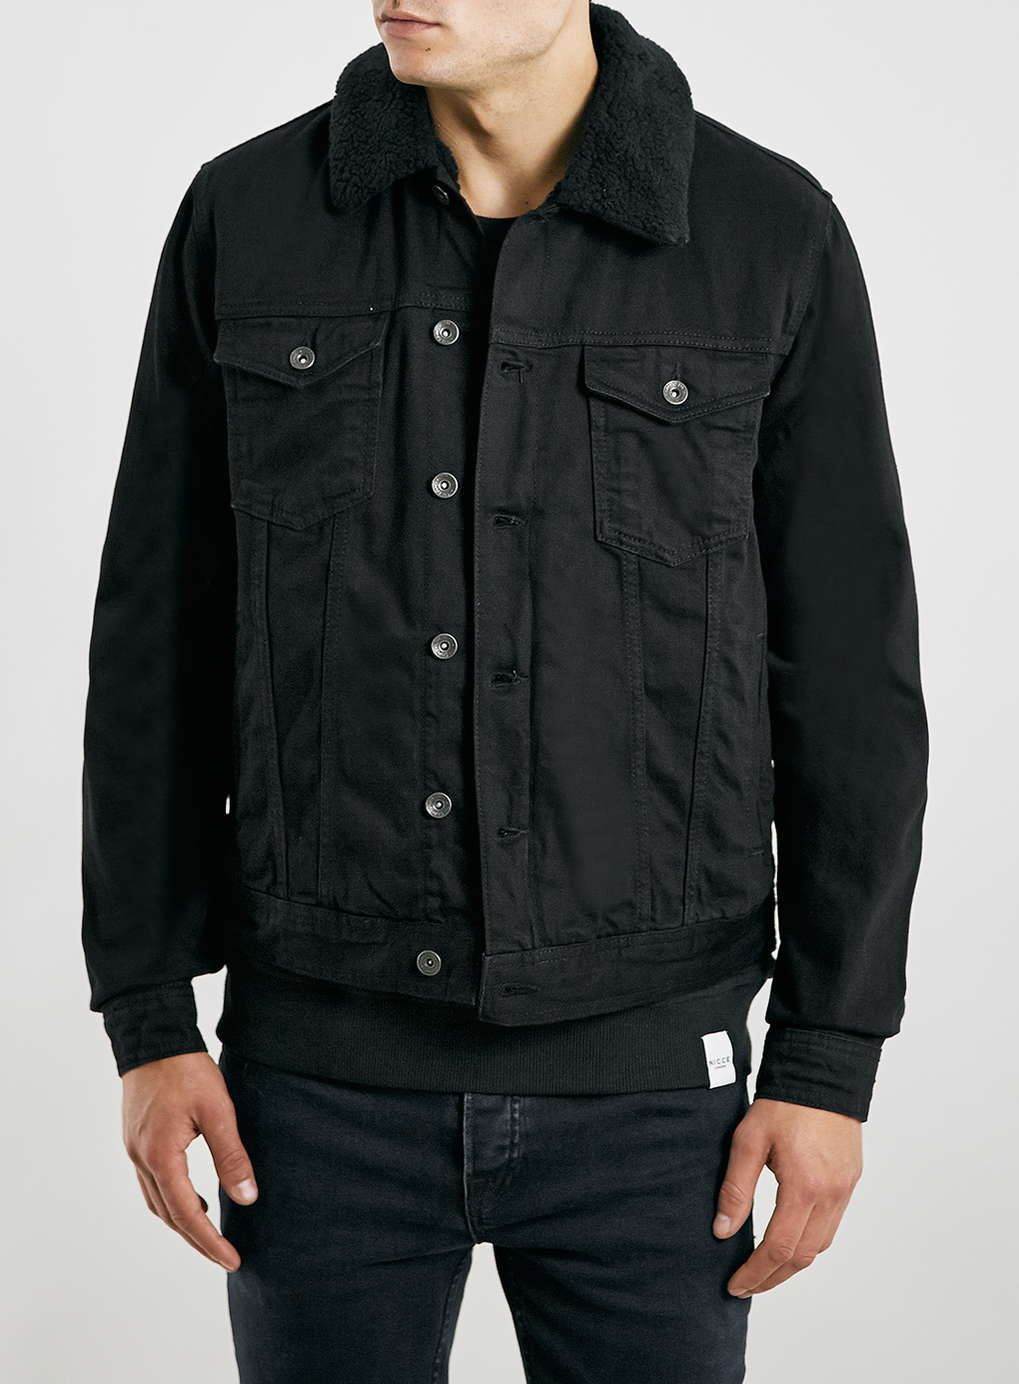 Black Borg Lined Denim Jacket | Coats, Jackets and Denim jackets